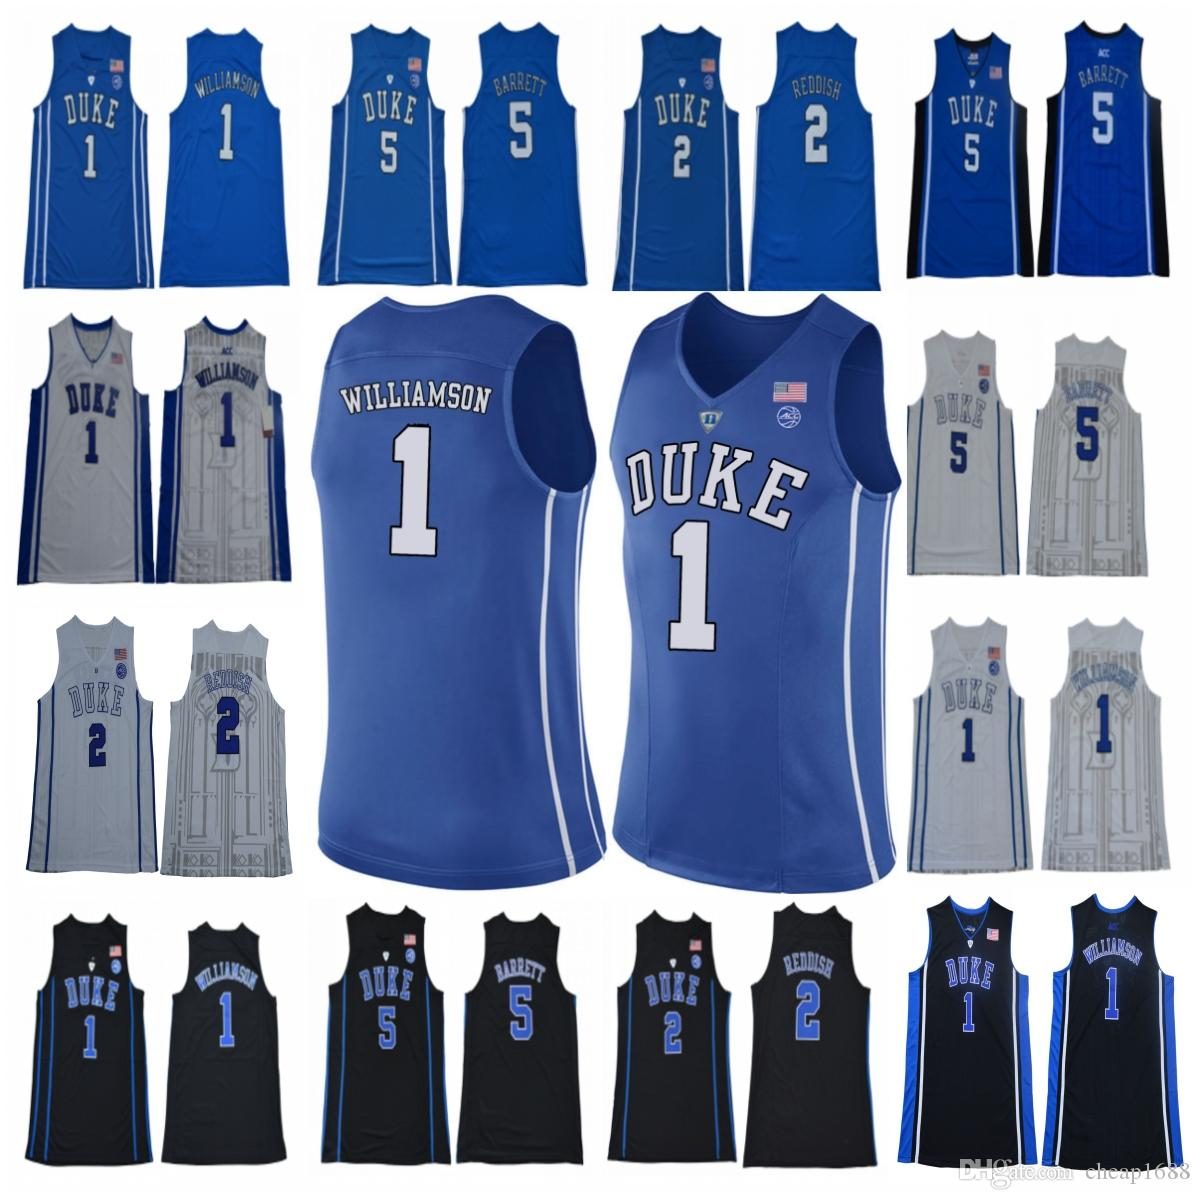 5e719c9072d 2019 NCAA Duke Blue Devils 1 Zion Williamson 5 RJ Barrett 2 Cam Reddish  White Blue Black Men Youth College Basketball Jerseys From Cheap1688